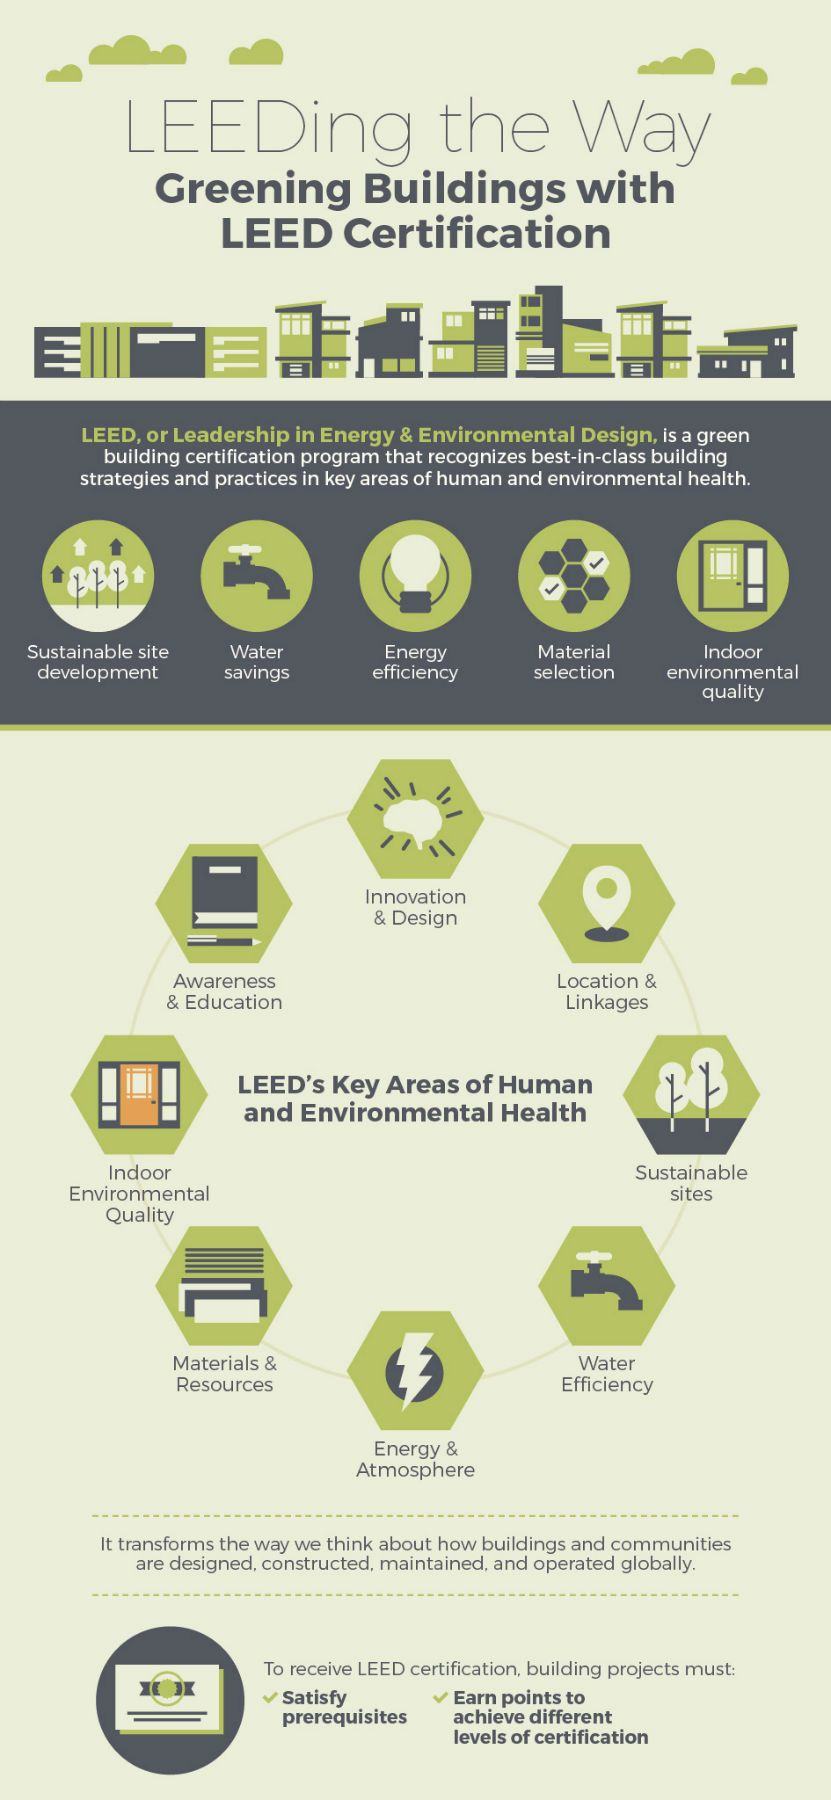 Learn More About Leed Certification System Through This Infographic